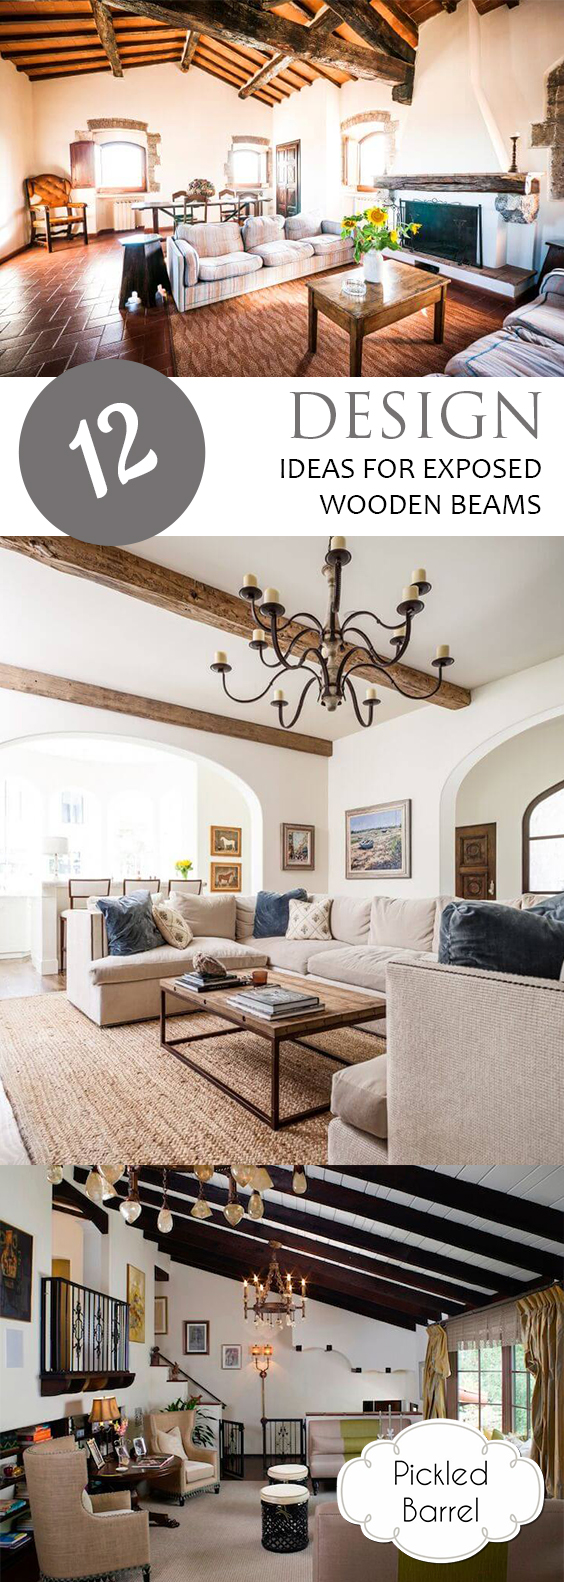 12 Design Ideas for Exposed Wooden Beams| Exposed Wooden Beams, Exposed Beams, DIY Home, Rustic Home, Rustic Home Decor, Popular Pin #ExposedBeams #DIYHome #RusticHome